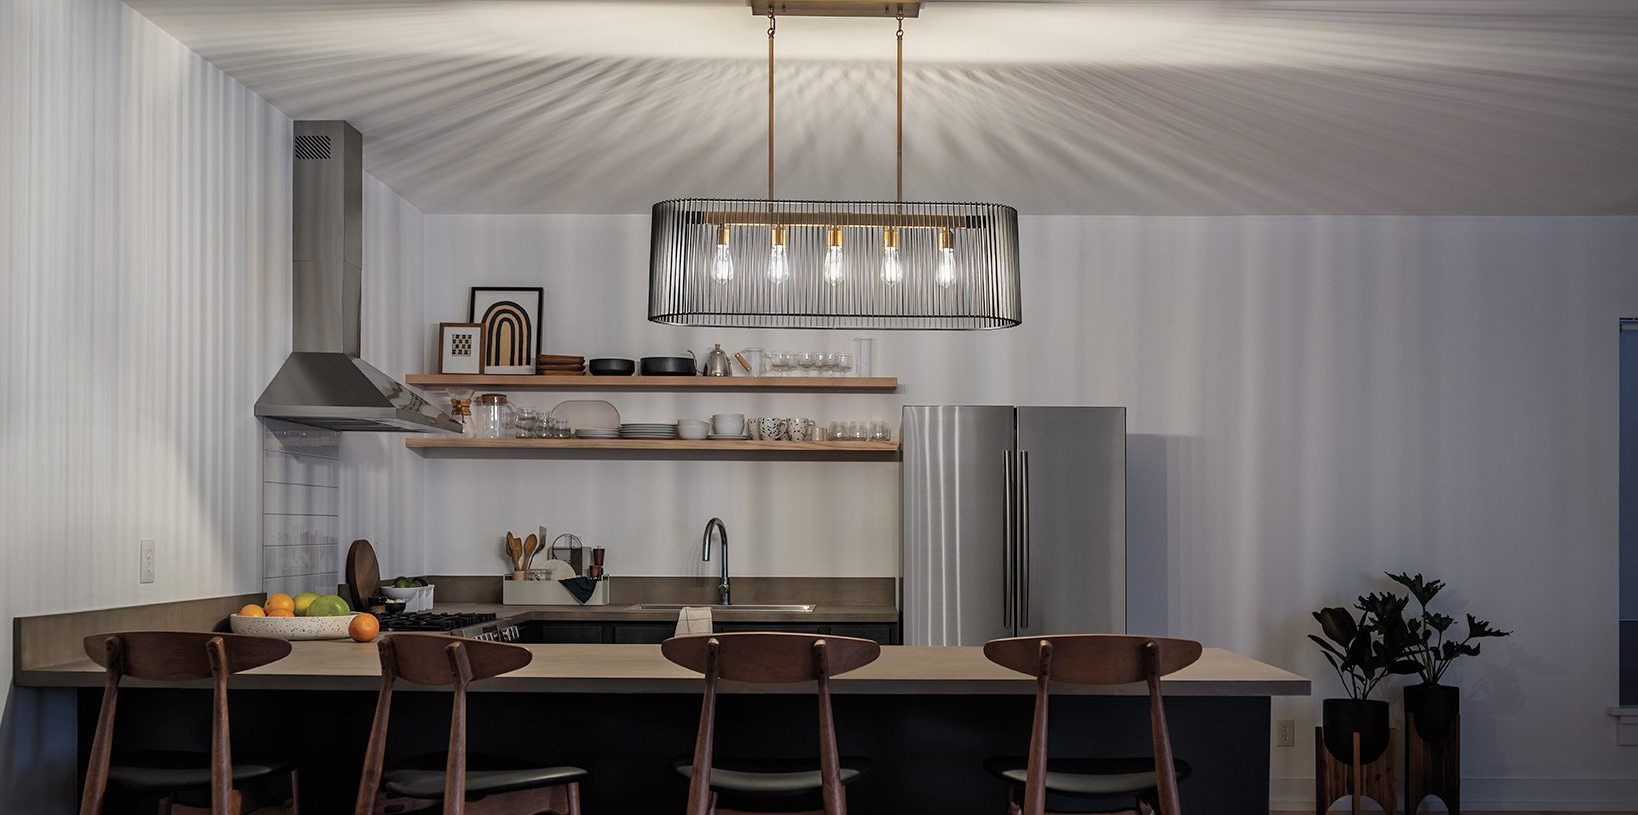 Dailey 4-Light Drum Chandeliers intended for Most Up-to-Date Kichler Lighting - Pendant, Ceiling, Landscape Lights & More